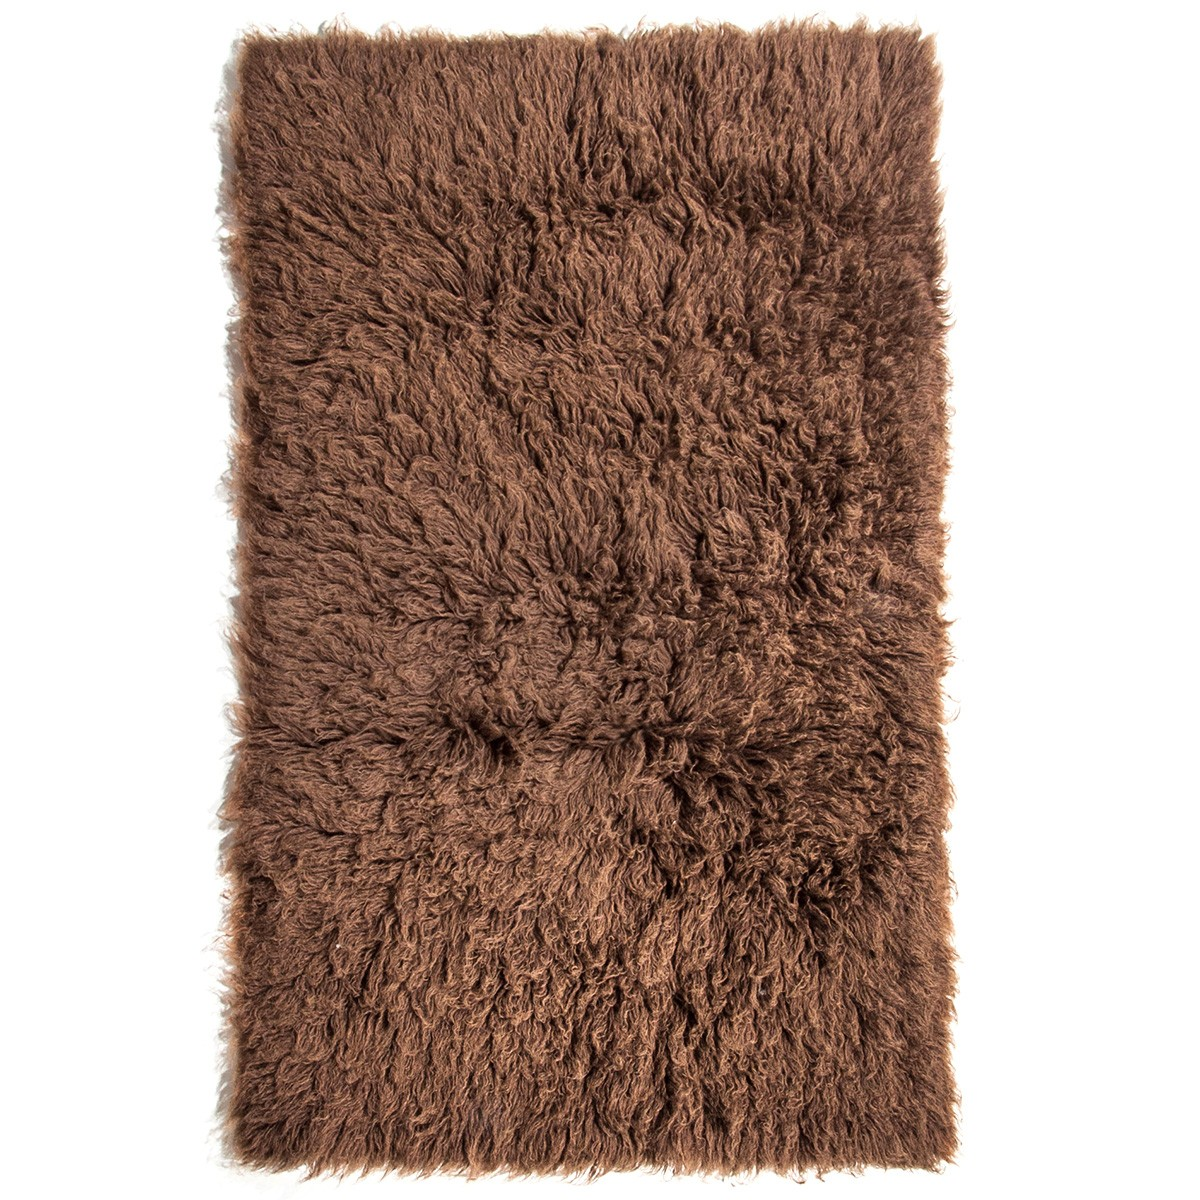 Flokati Greek Made Shaggy Wool Rug, 170x110cm, Cocoa